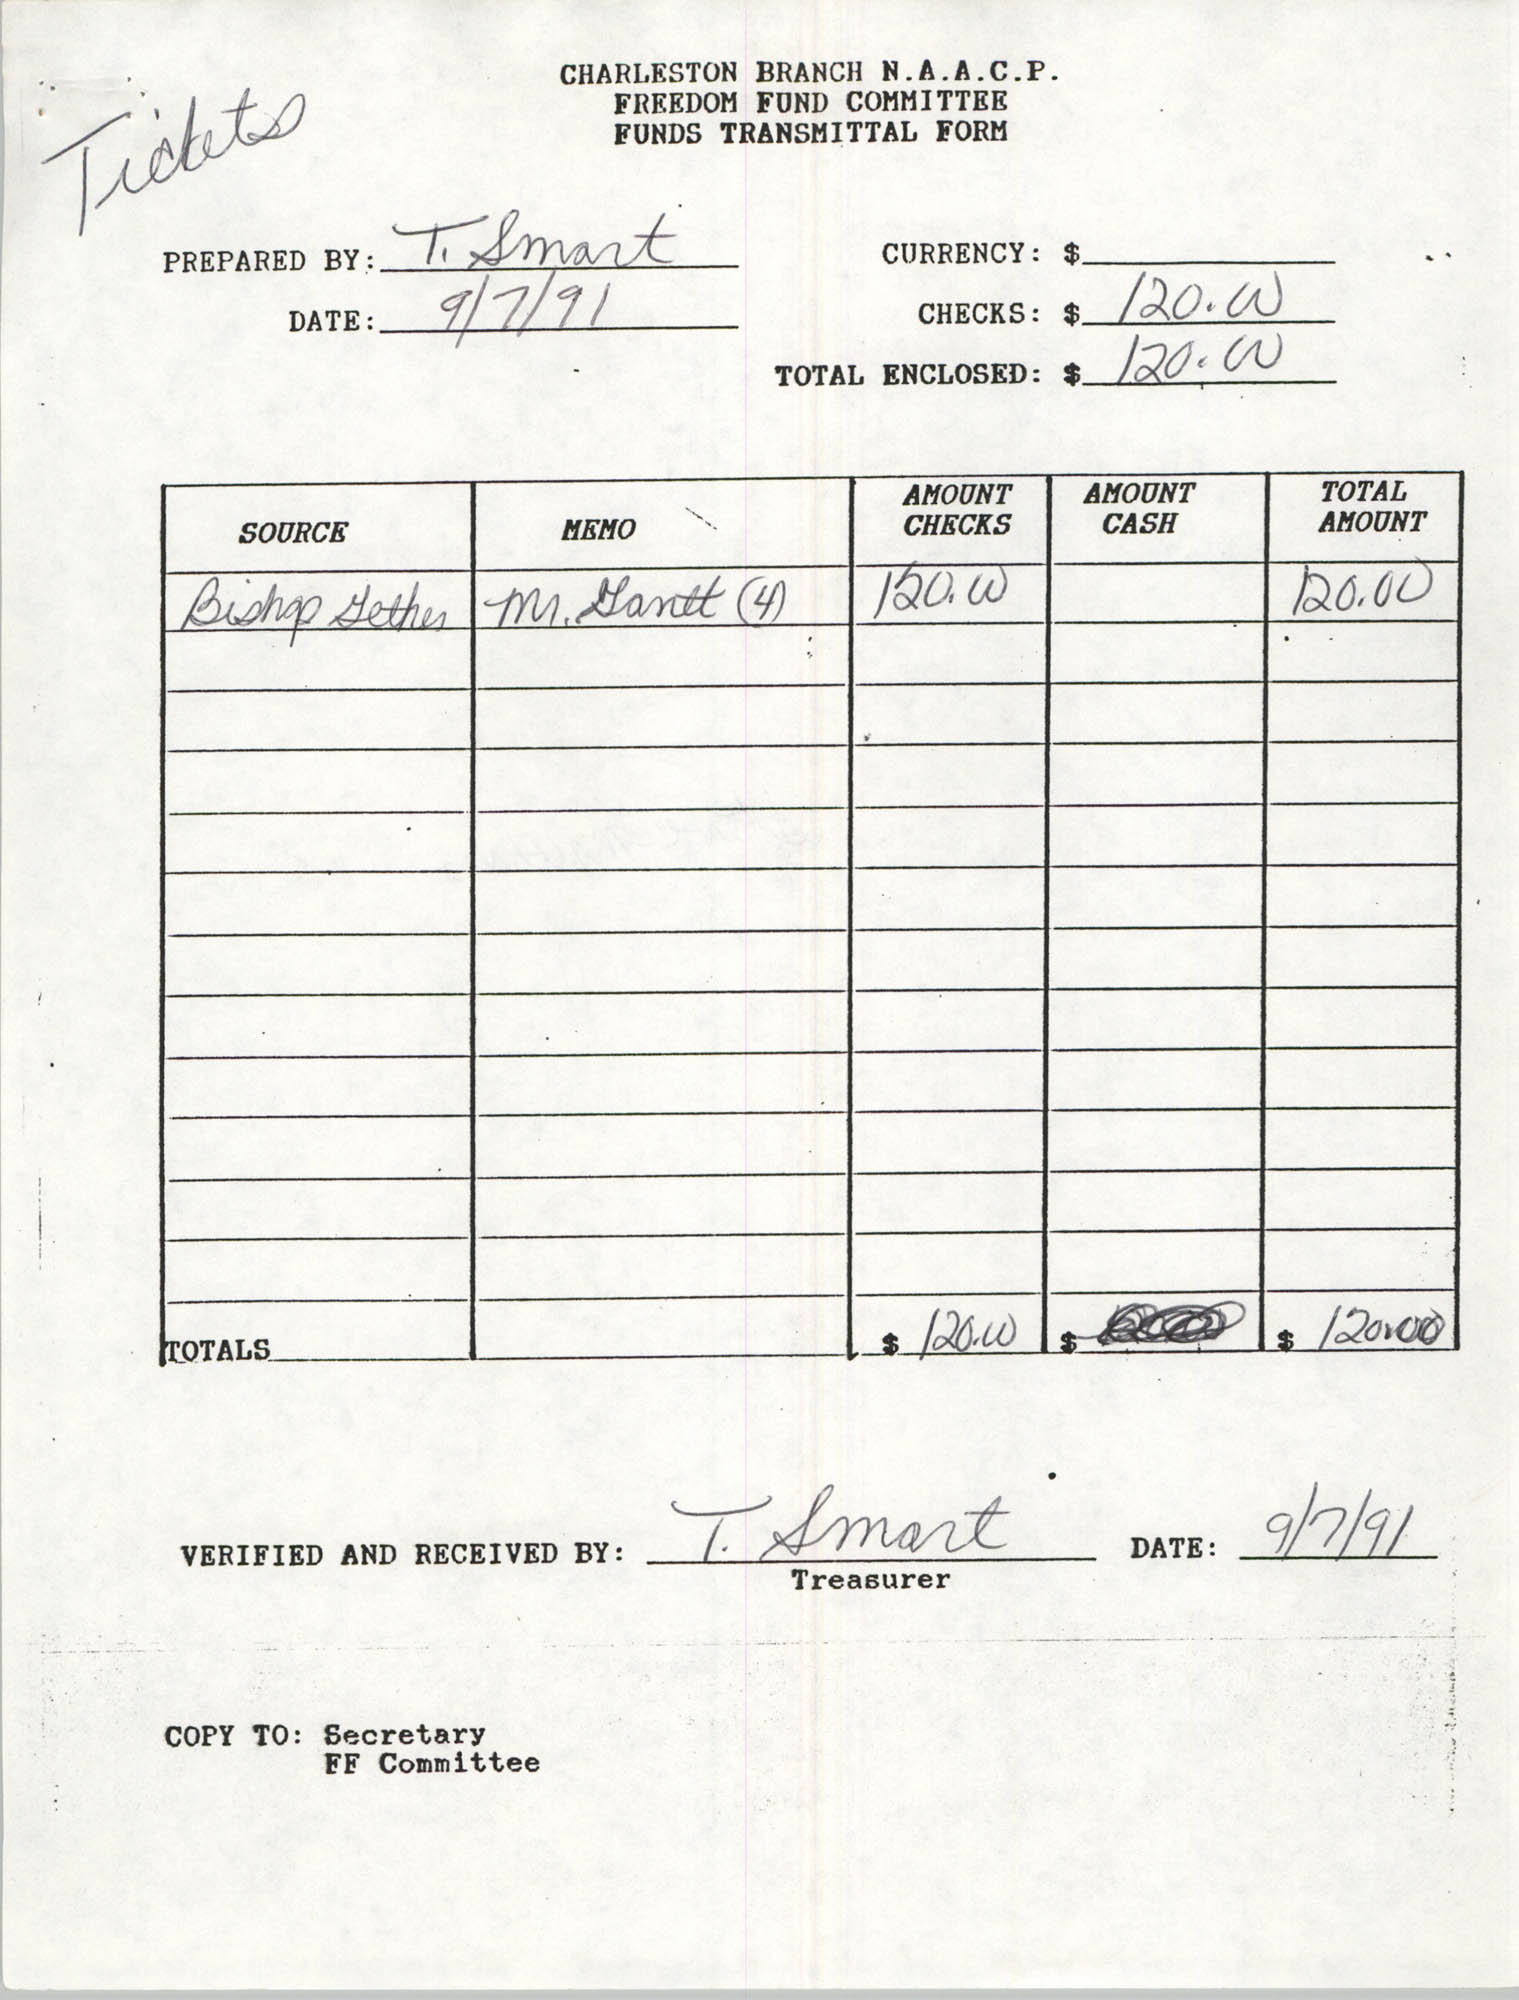 Charleston Branch of the NAACP Funds Transmittal Forms, September 1991, Page 23